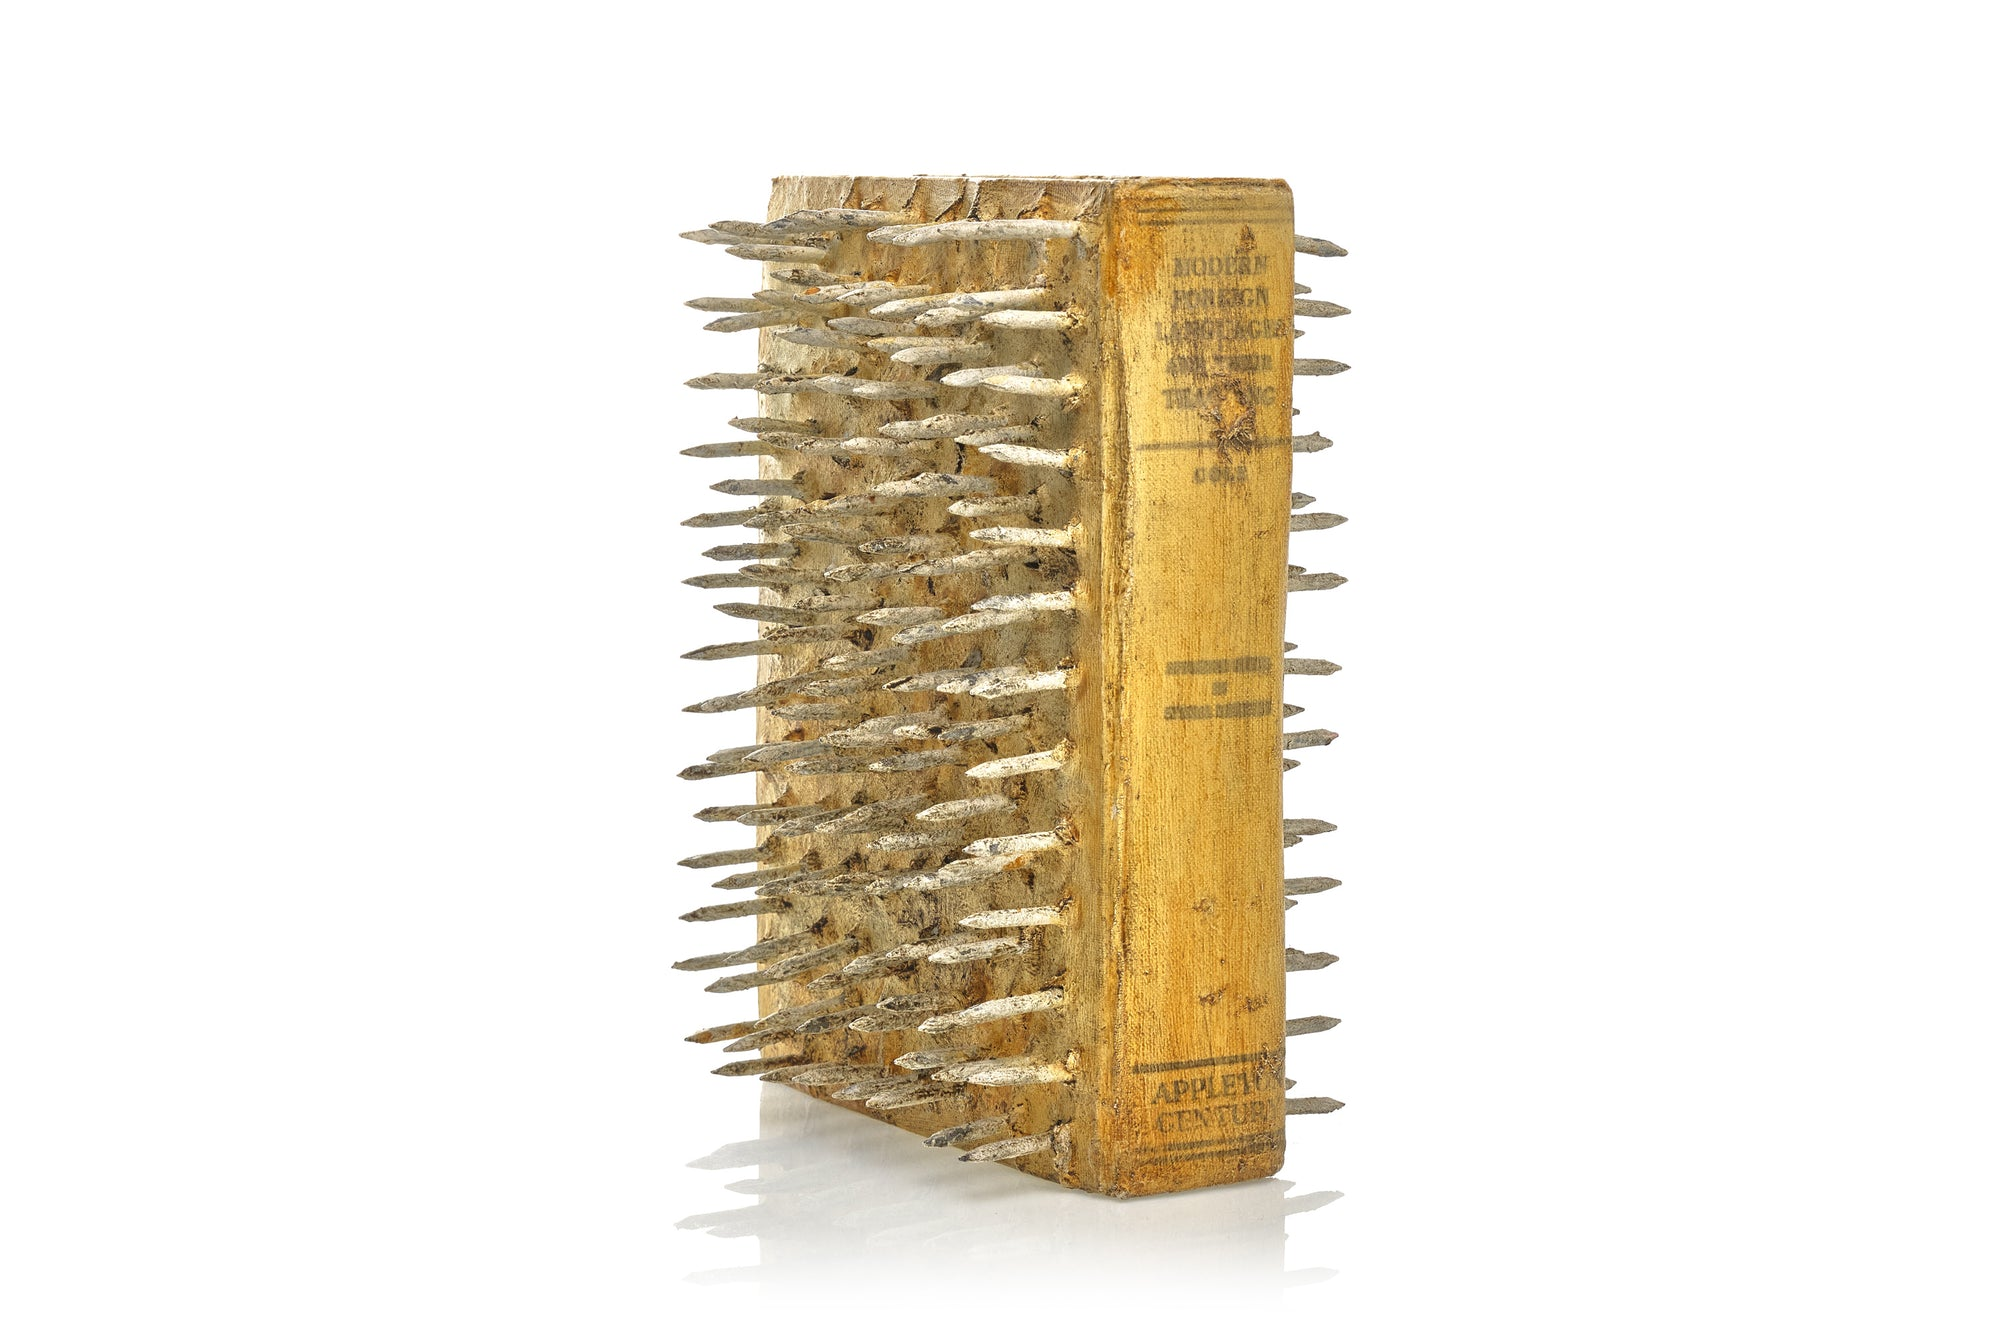 BARTON LIDICE BENES BOOK SCULPTURE